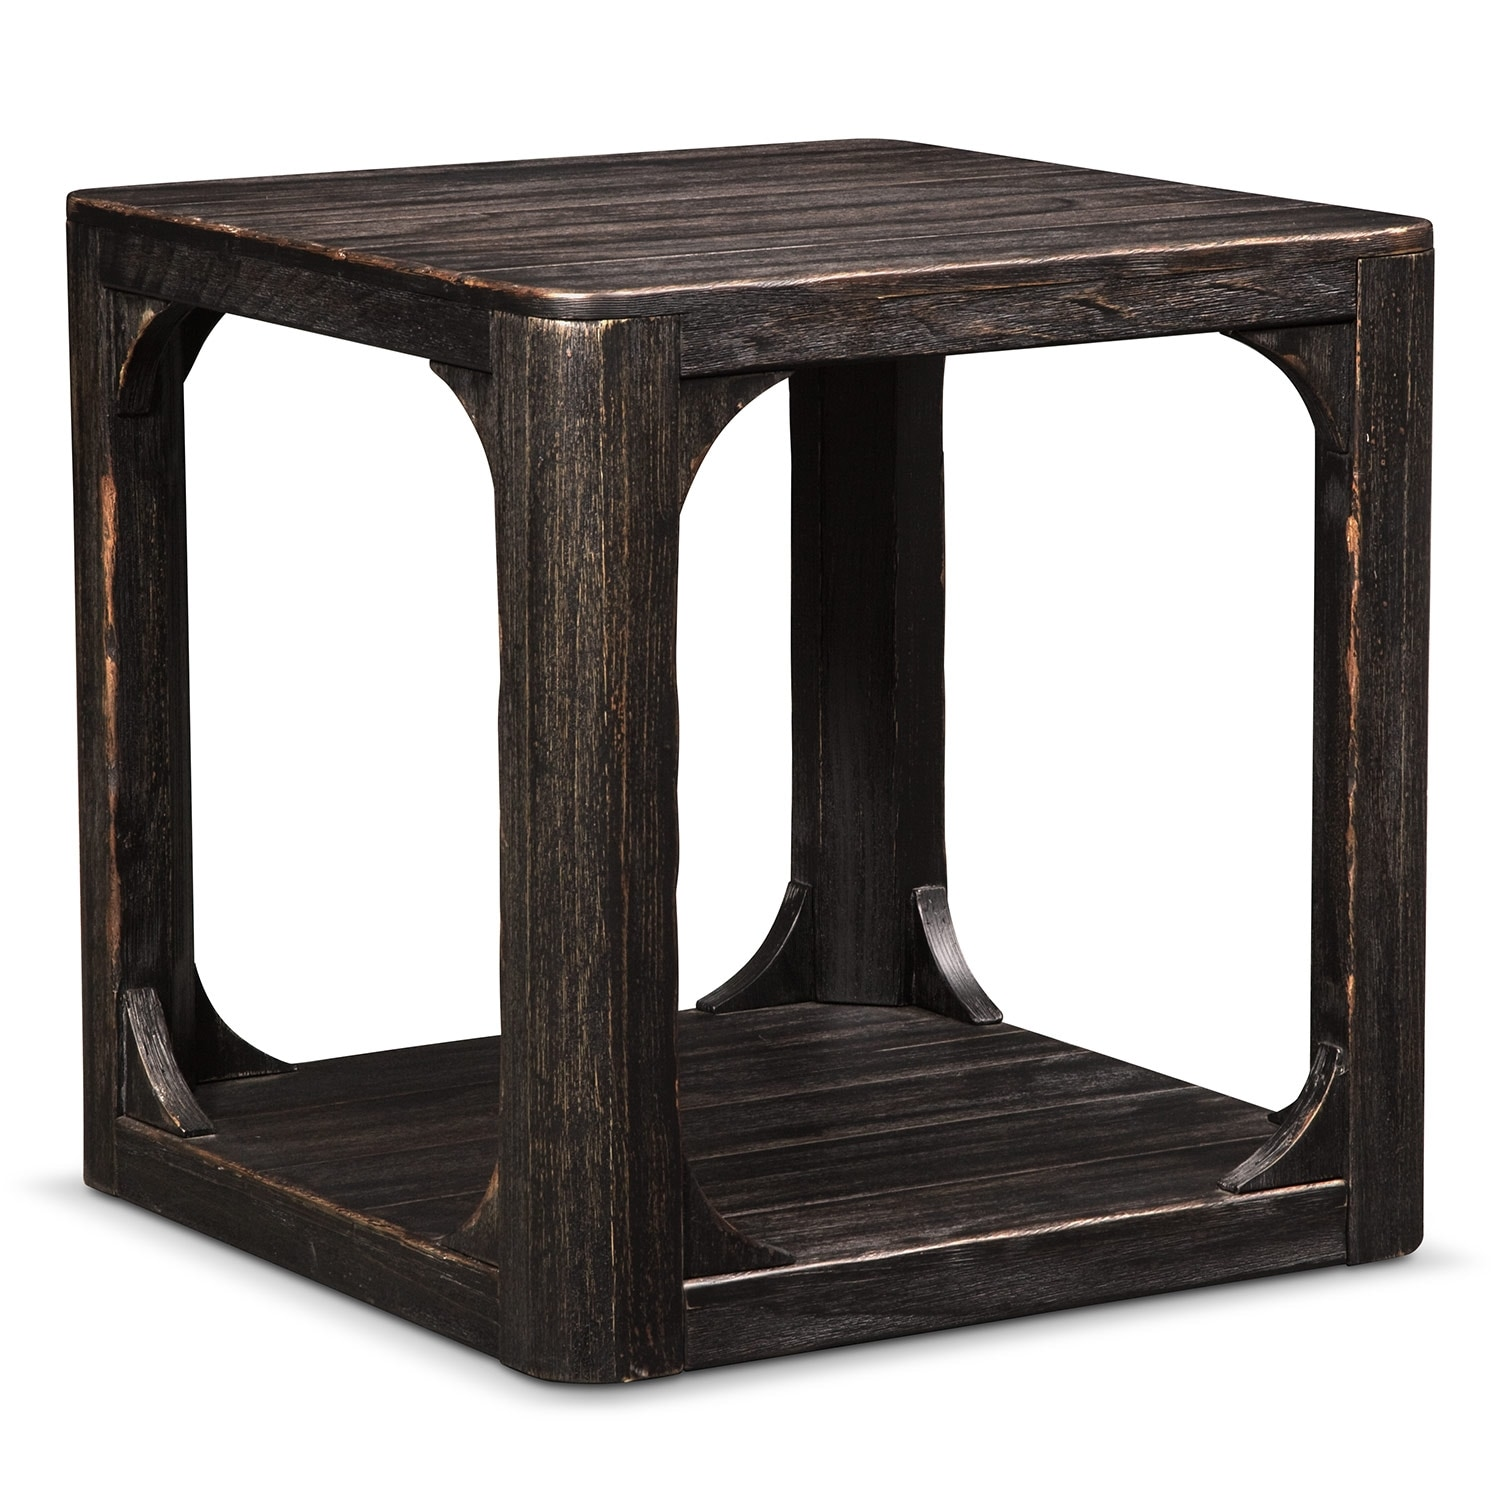 Prentice Square End Table - Weathered Black